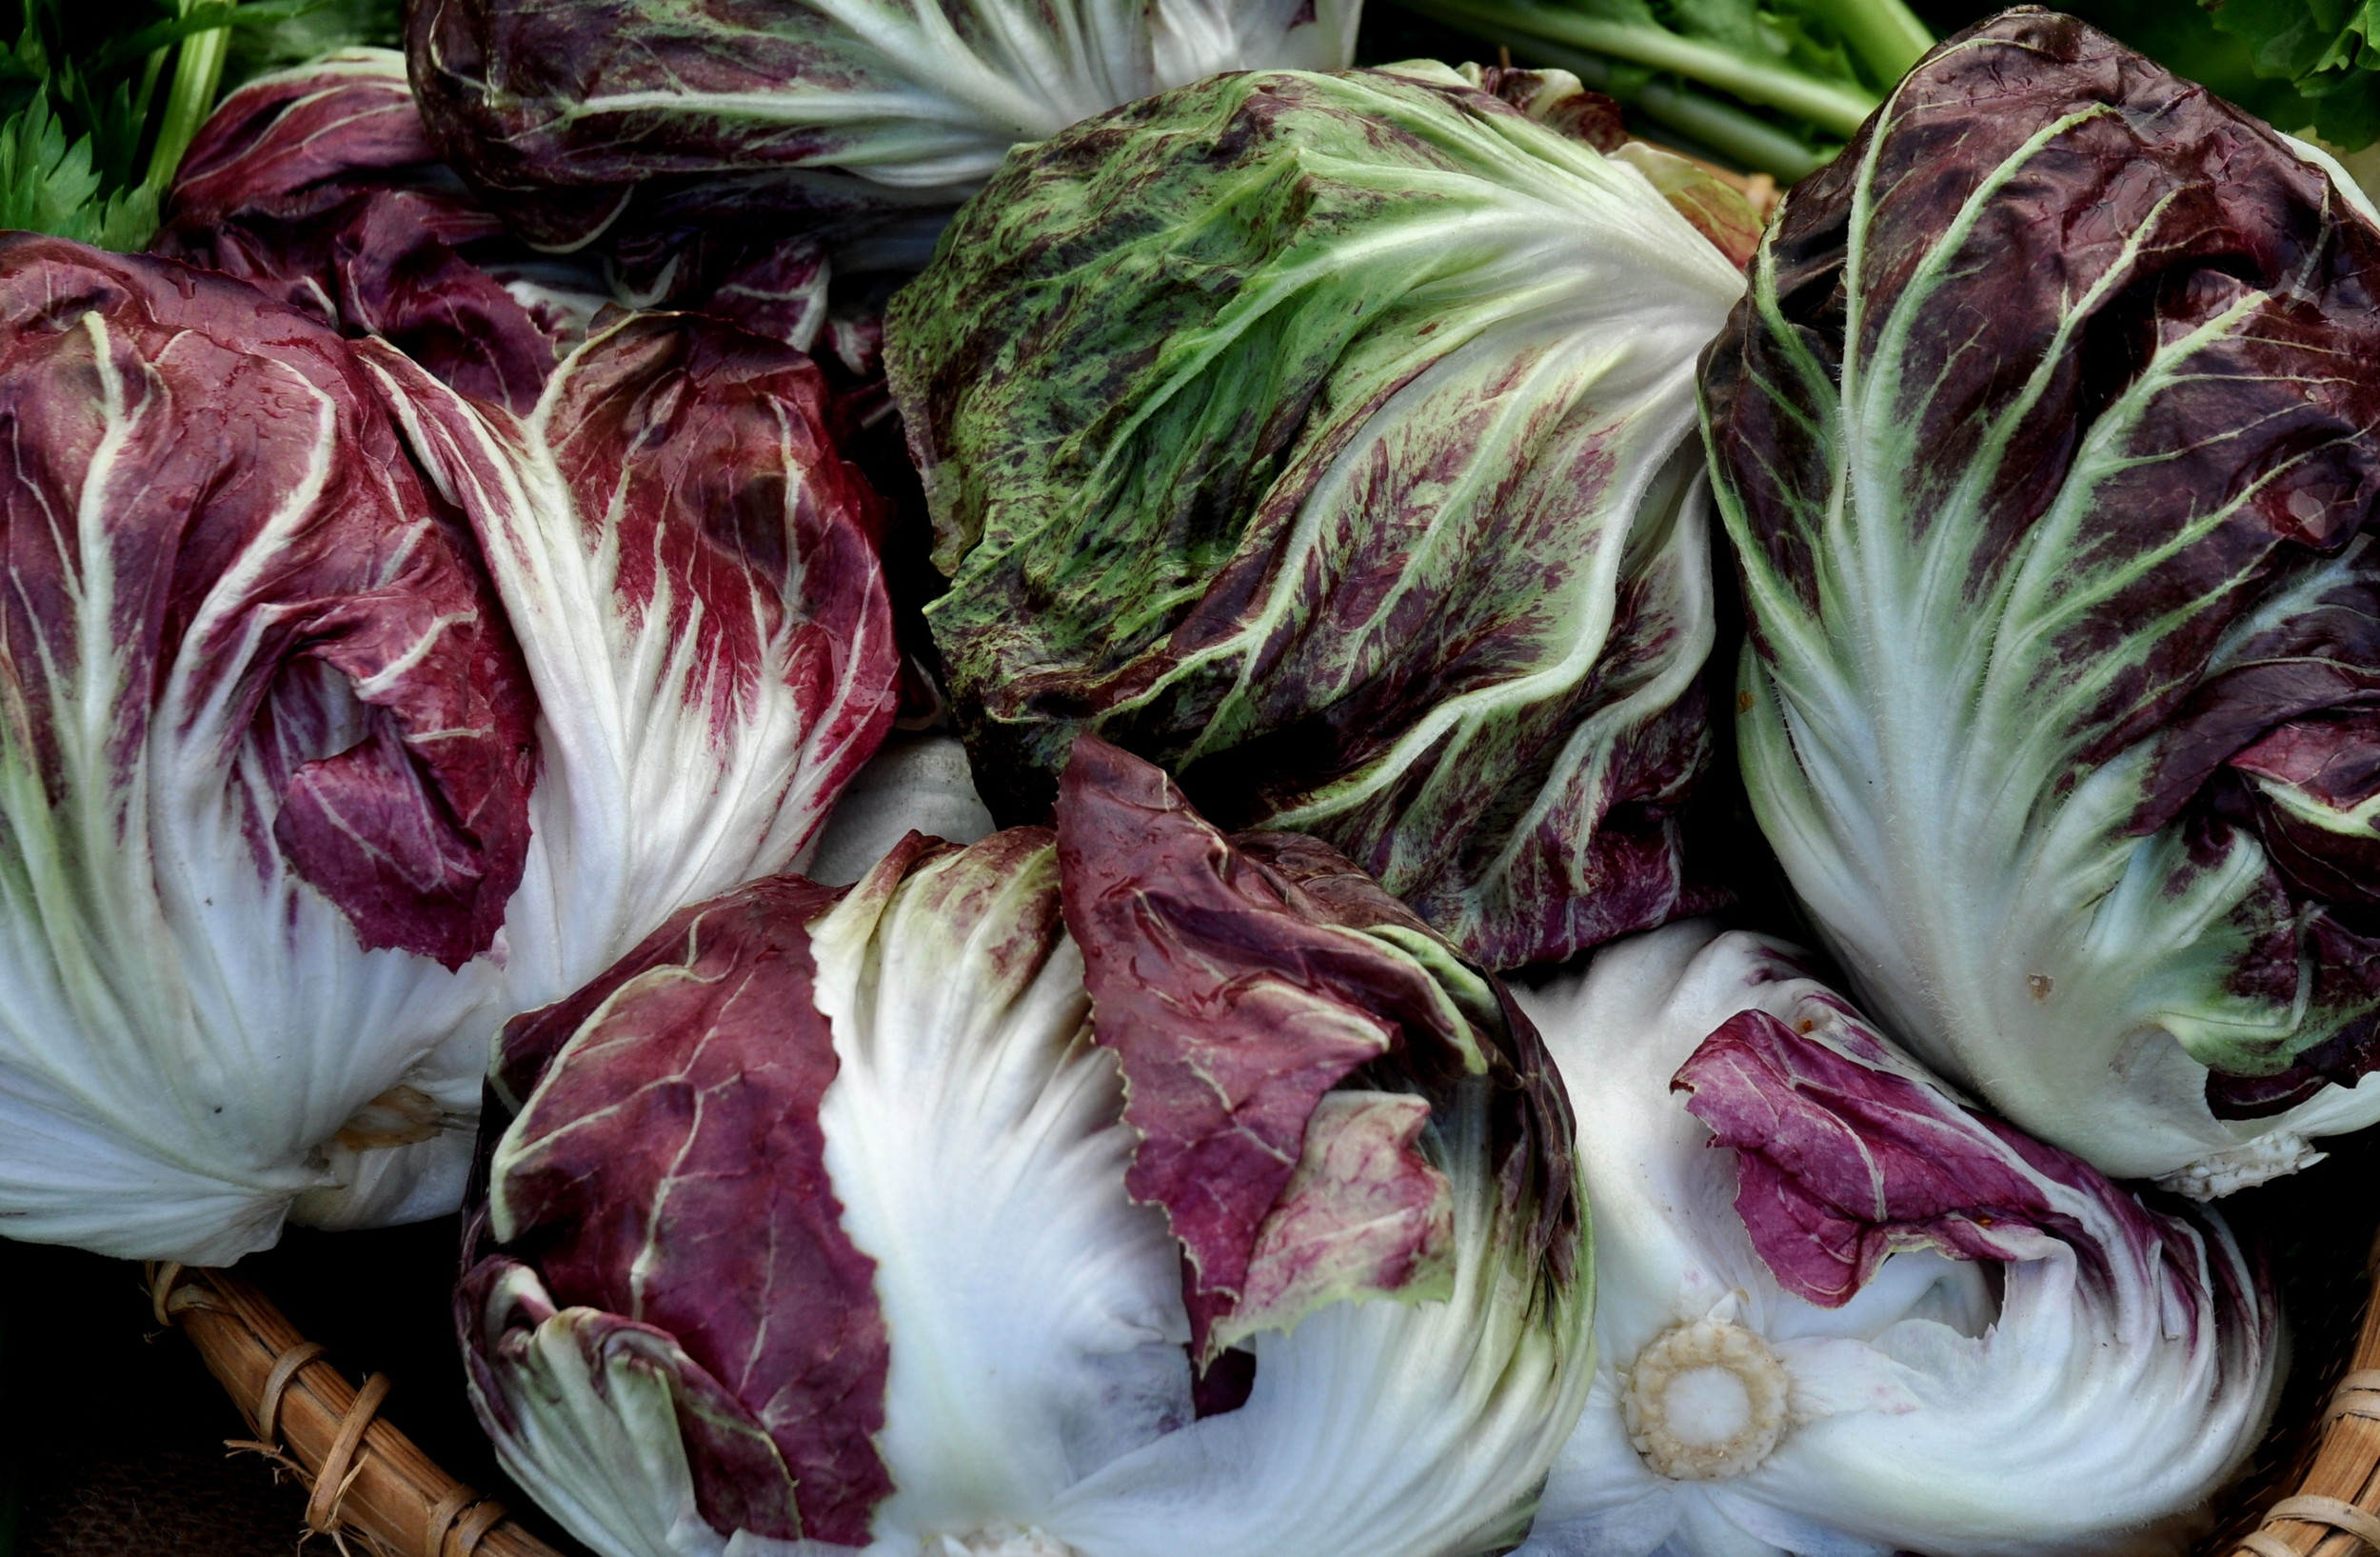 Chioggia radicchio from One Leaf Farm. Photo copyright 2013 by Zachary D. Lyons.